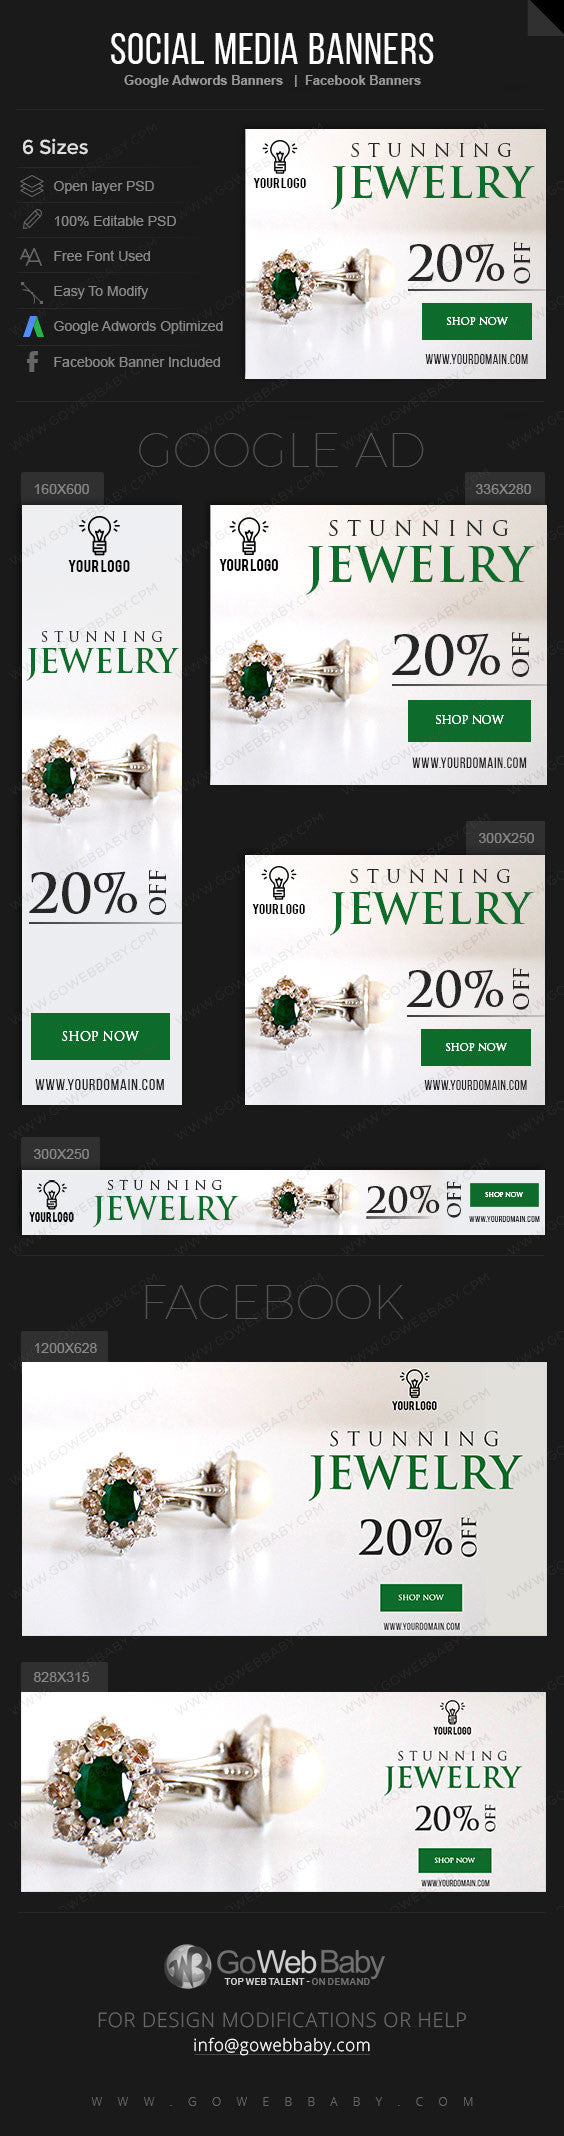 Google Adwords Display Banner with Facebook banners -Stunning Jewelry Store Website Marketing - GoWebBaby.Com